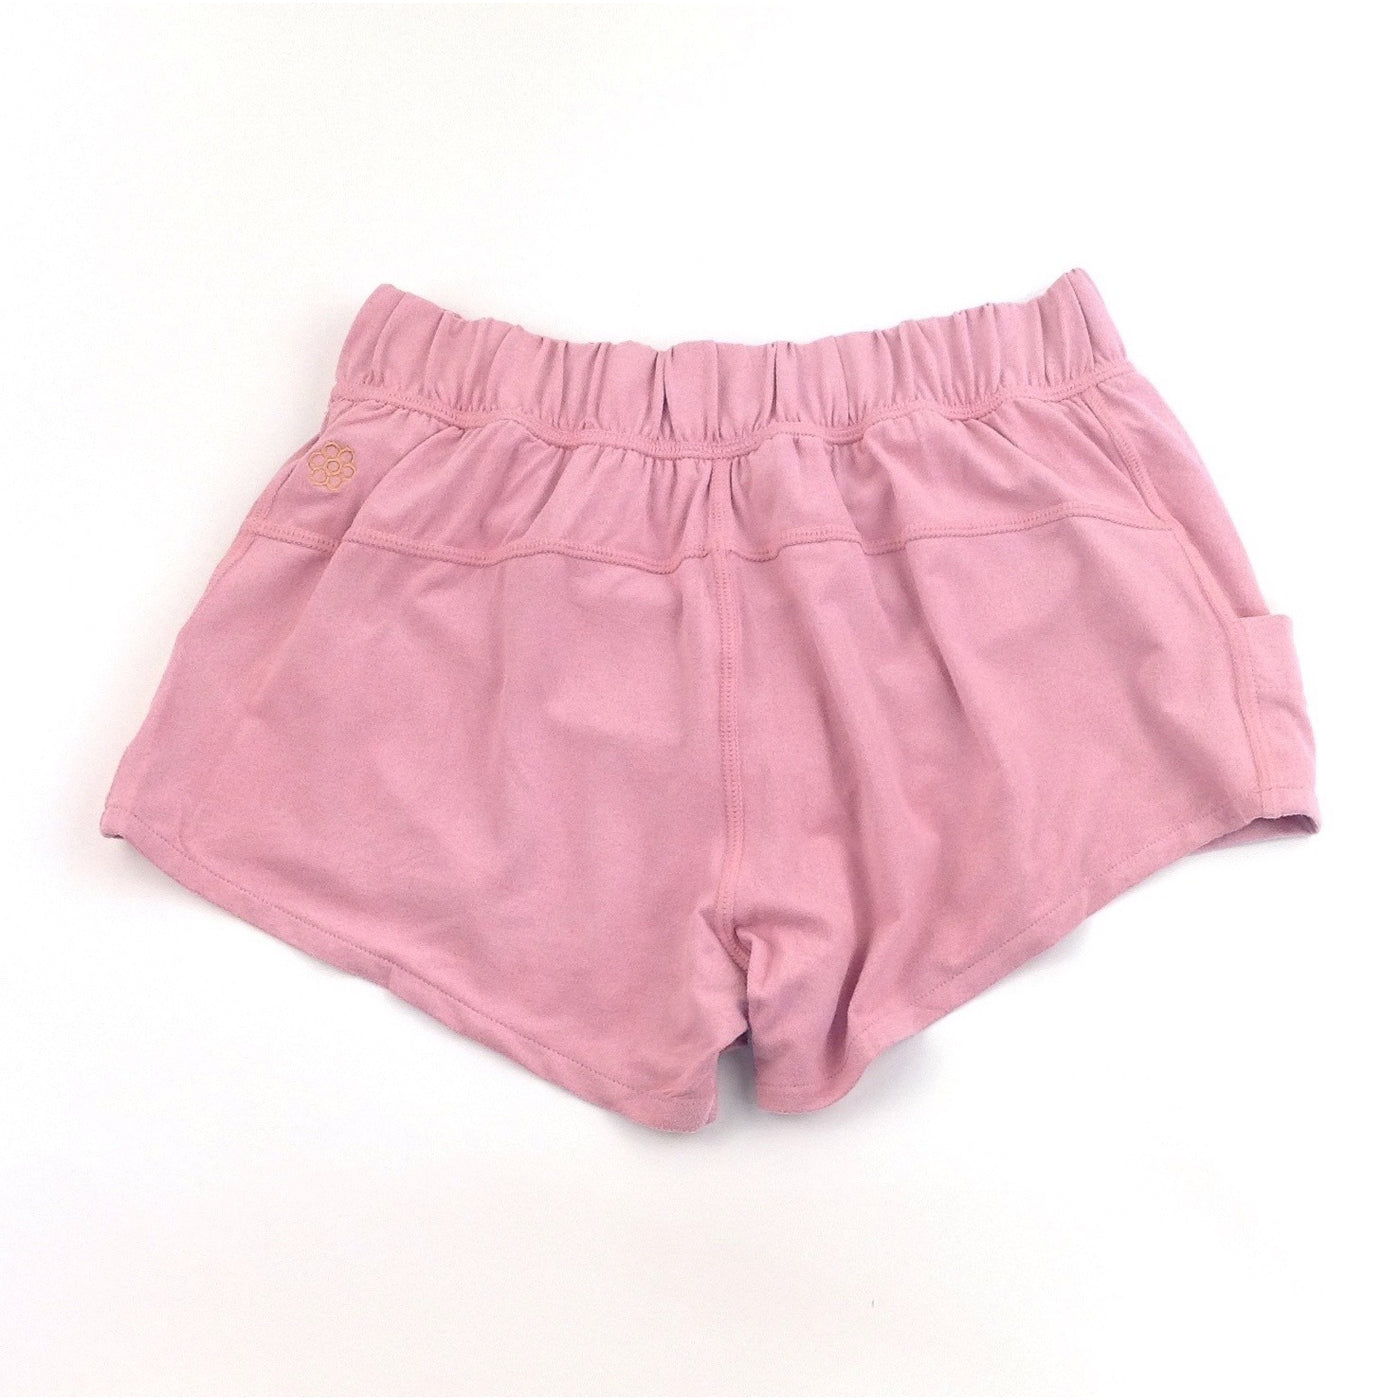 Sand Dollar Track Shorts - Adult